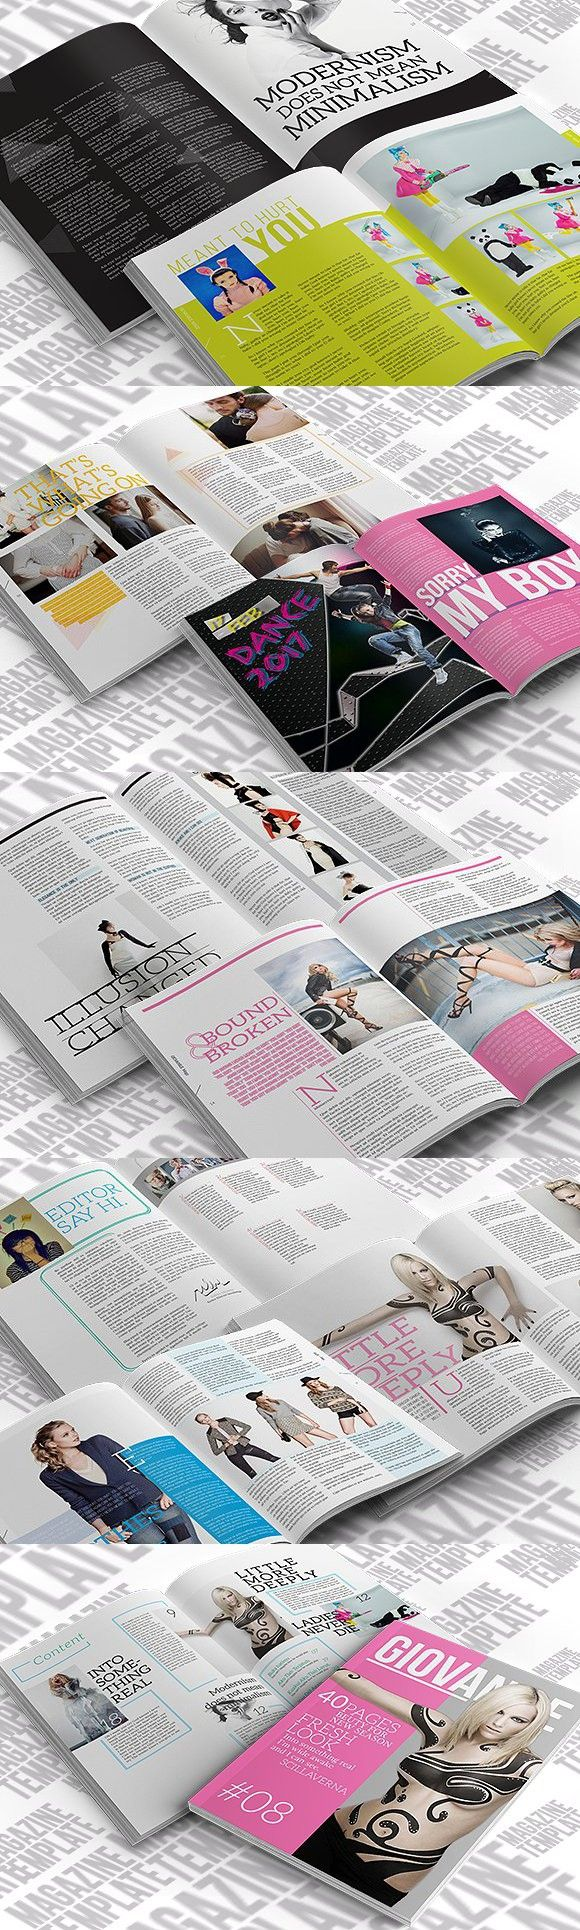 Best 25 indesign magazine templates ideas on pinterest magazine indesign magazine template pronofoot35fo Gallery